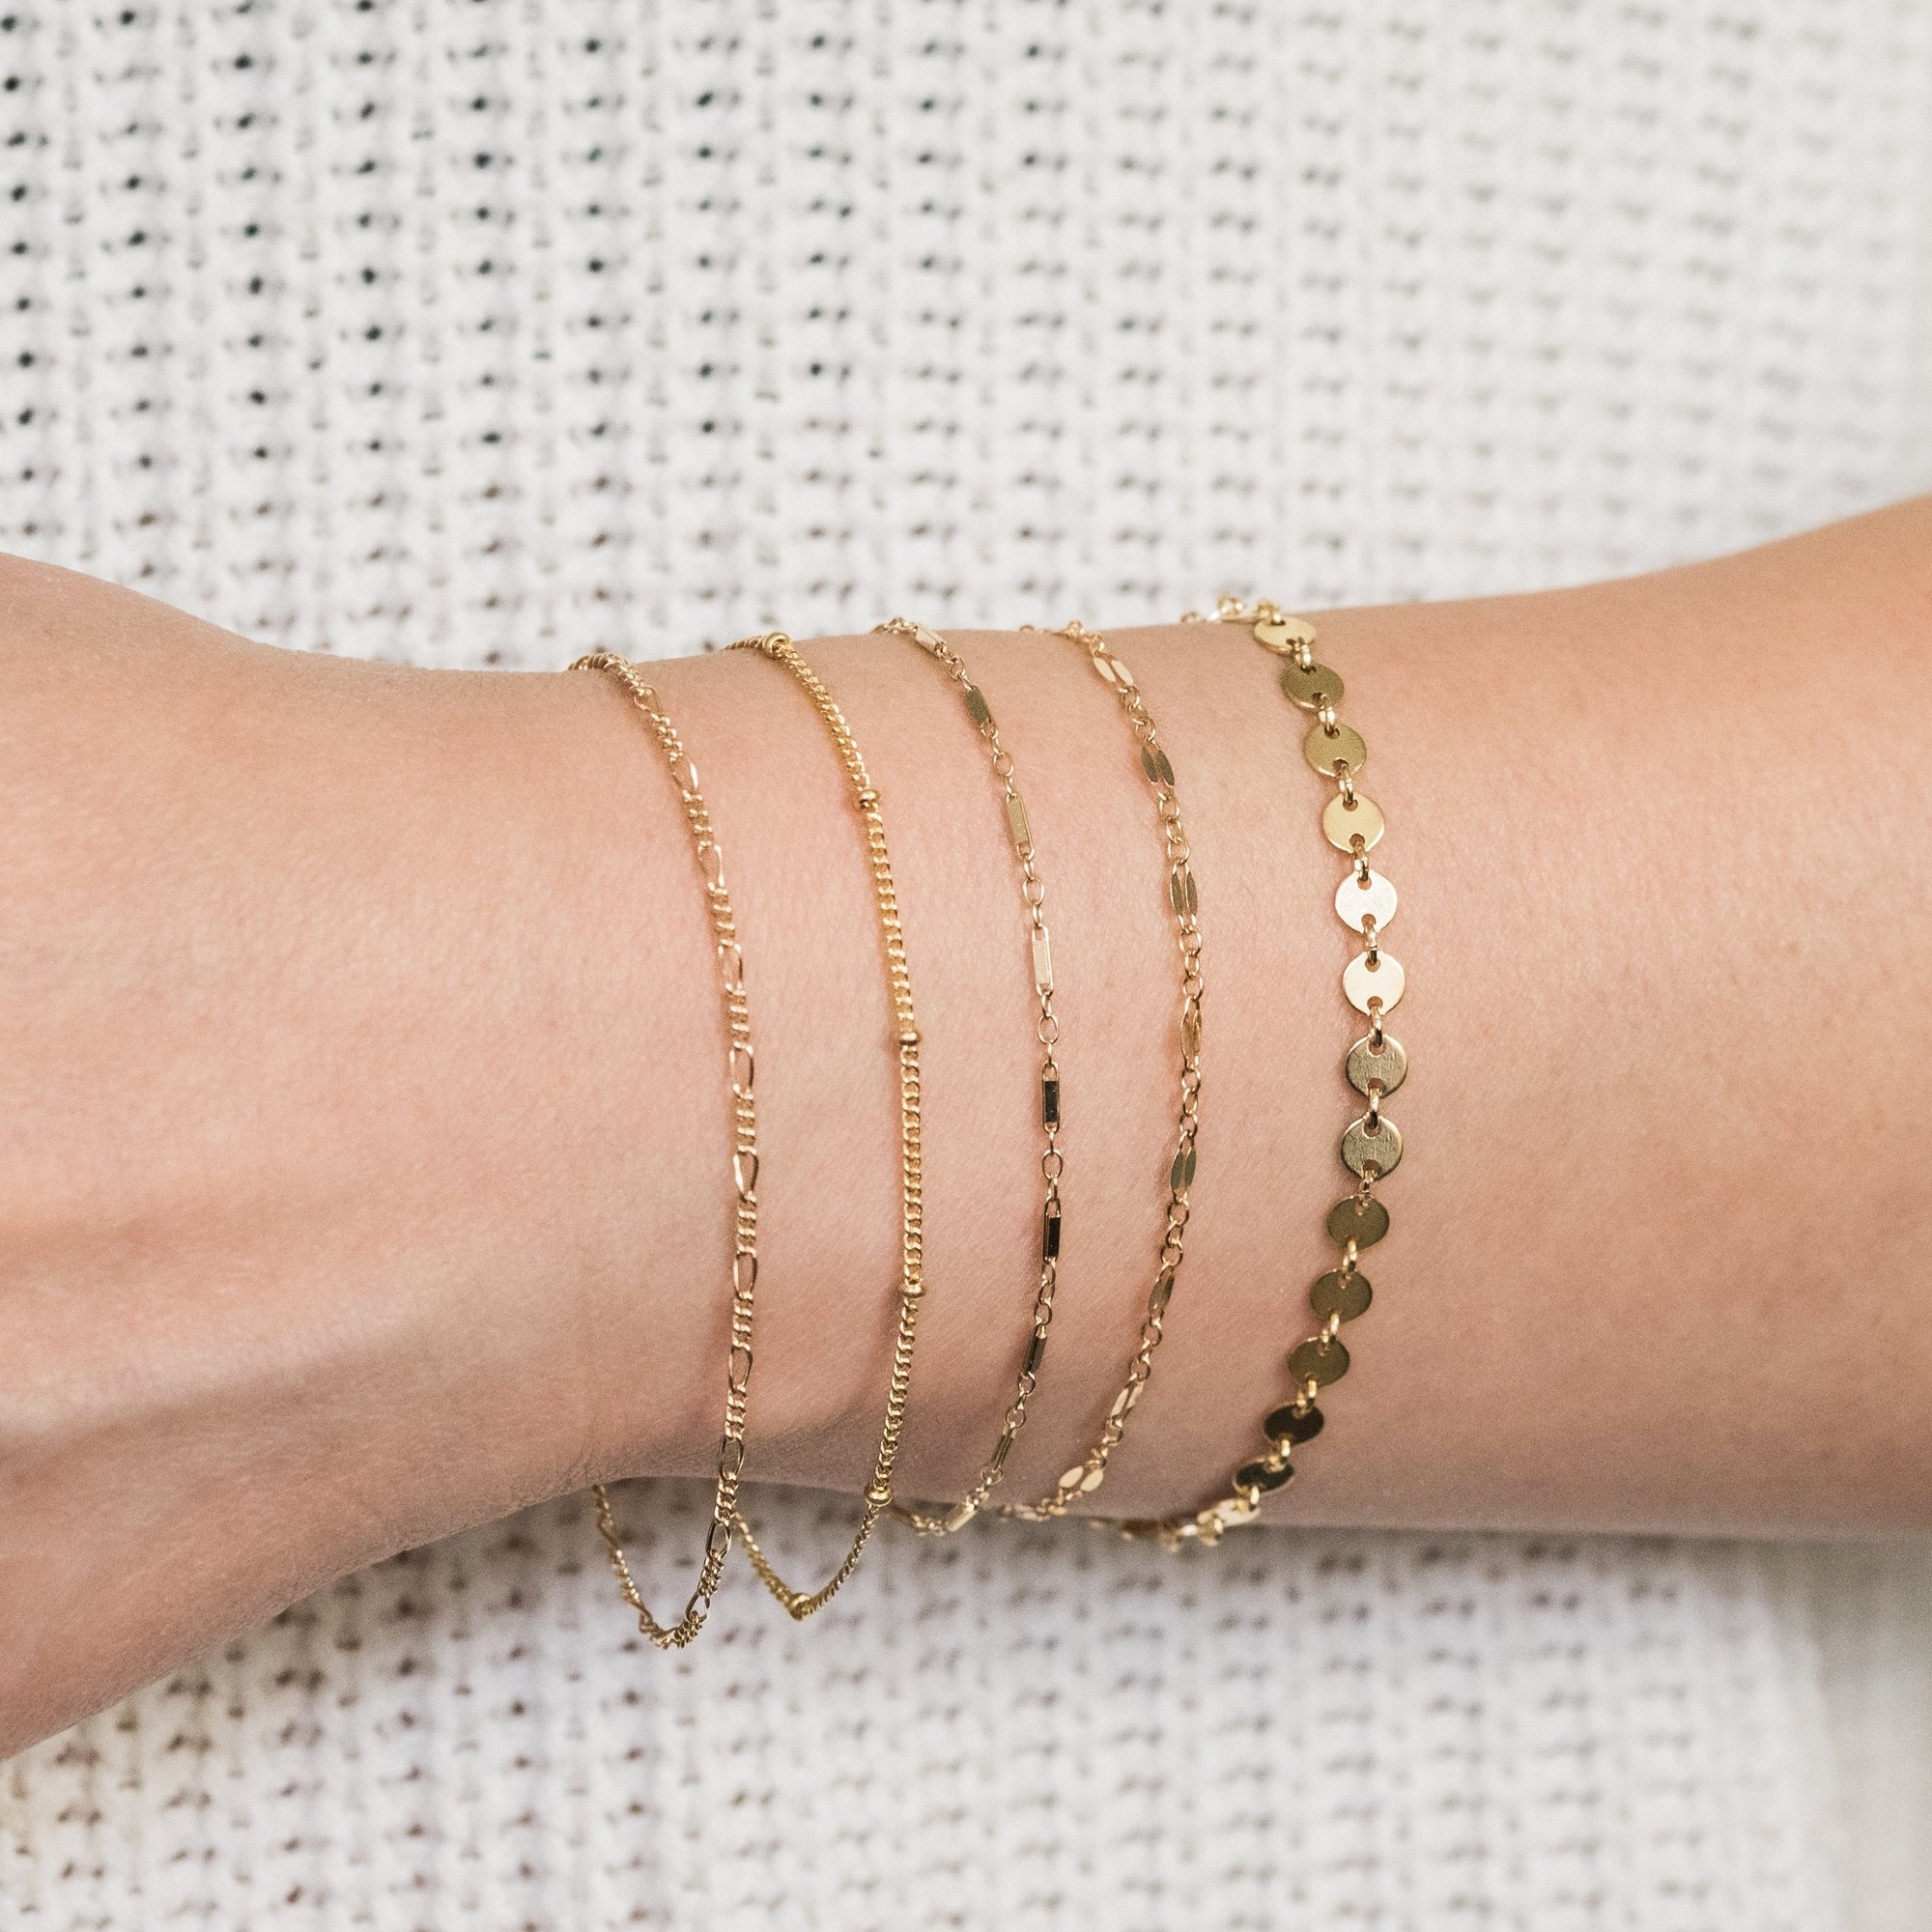 name day wishes-A bracelet or a dainty chain